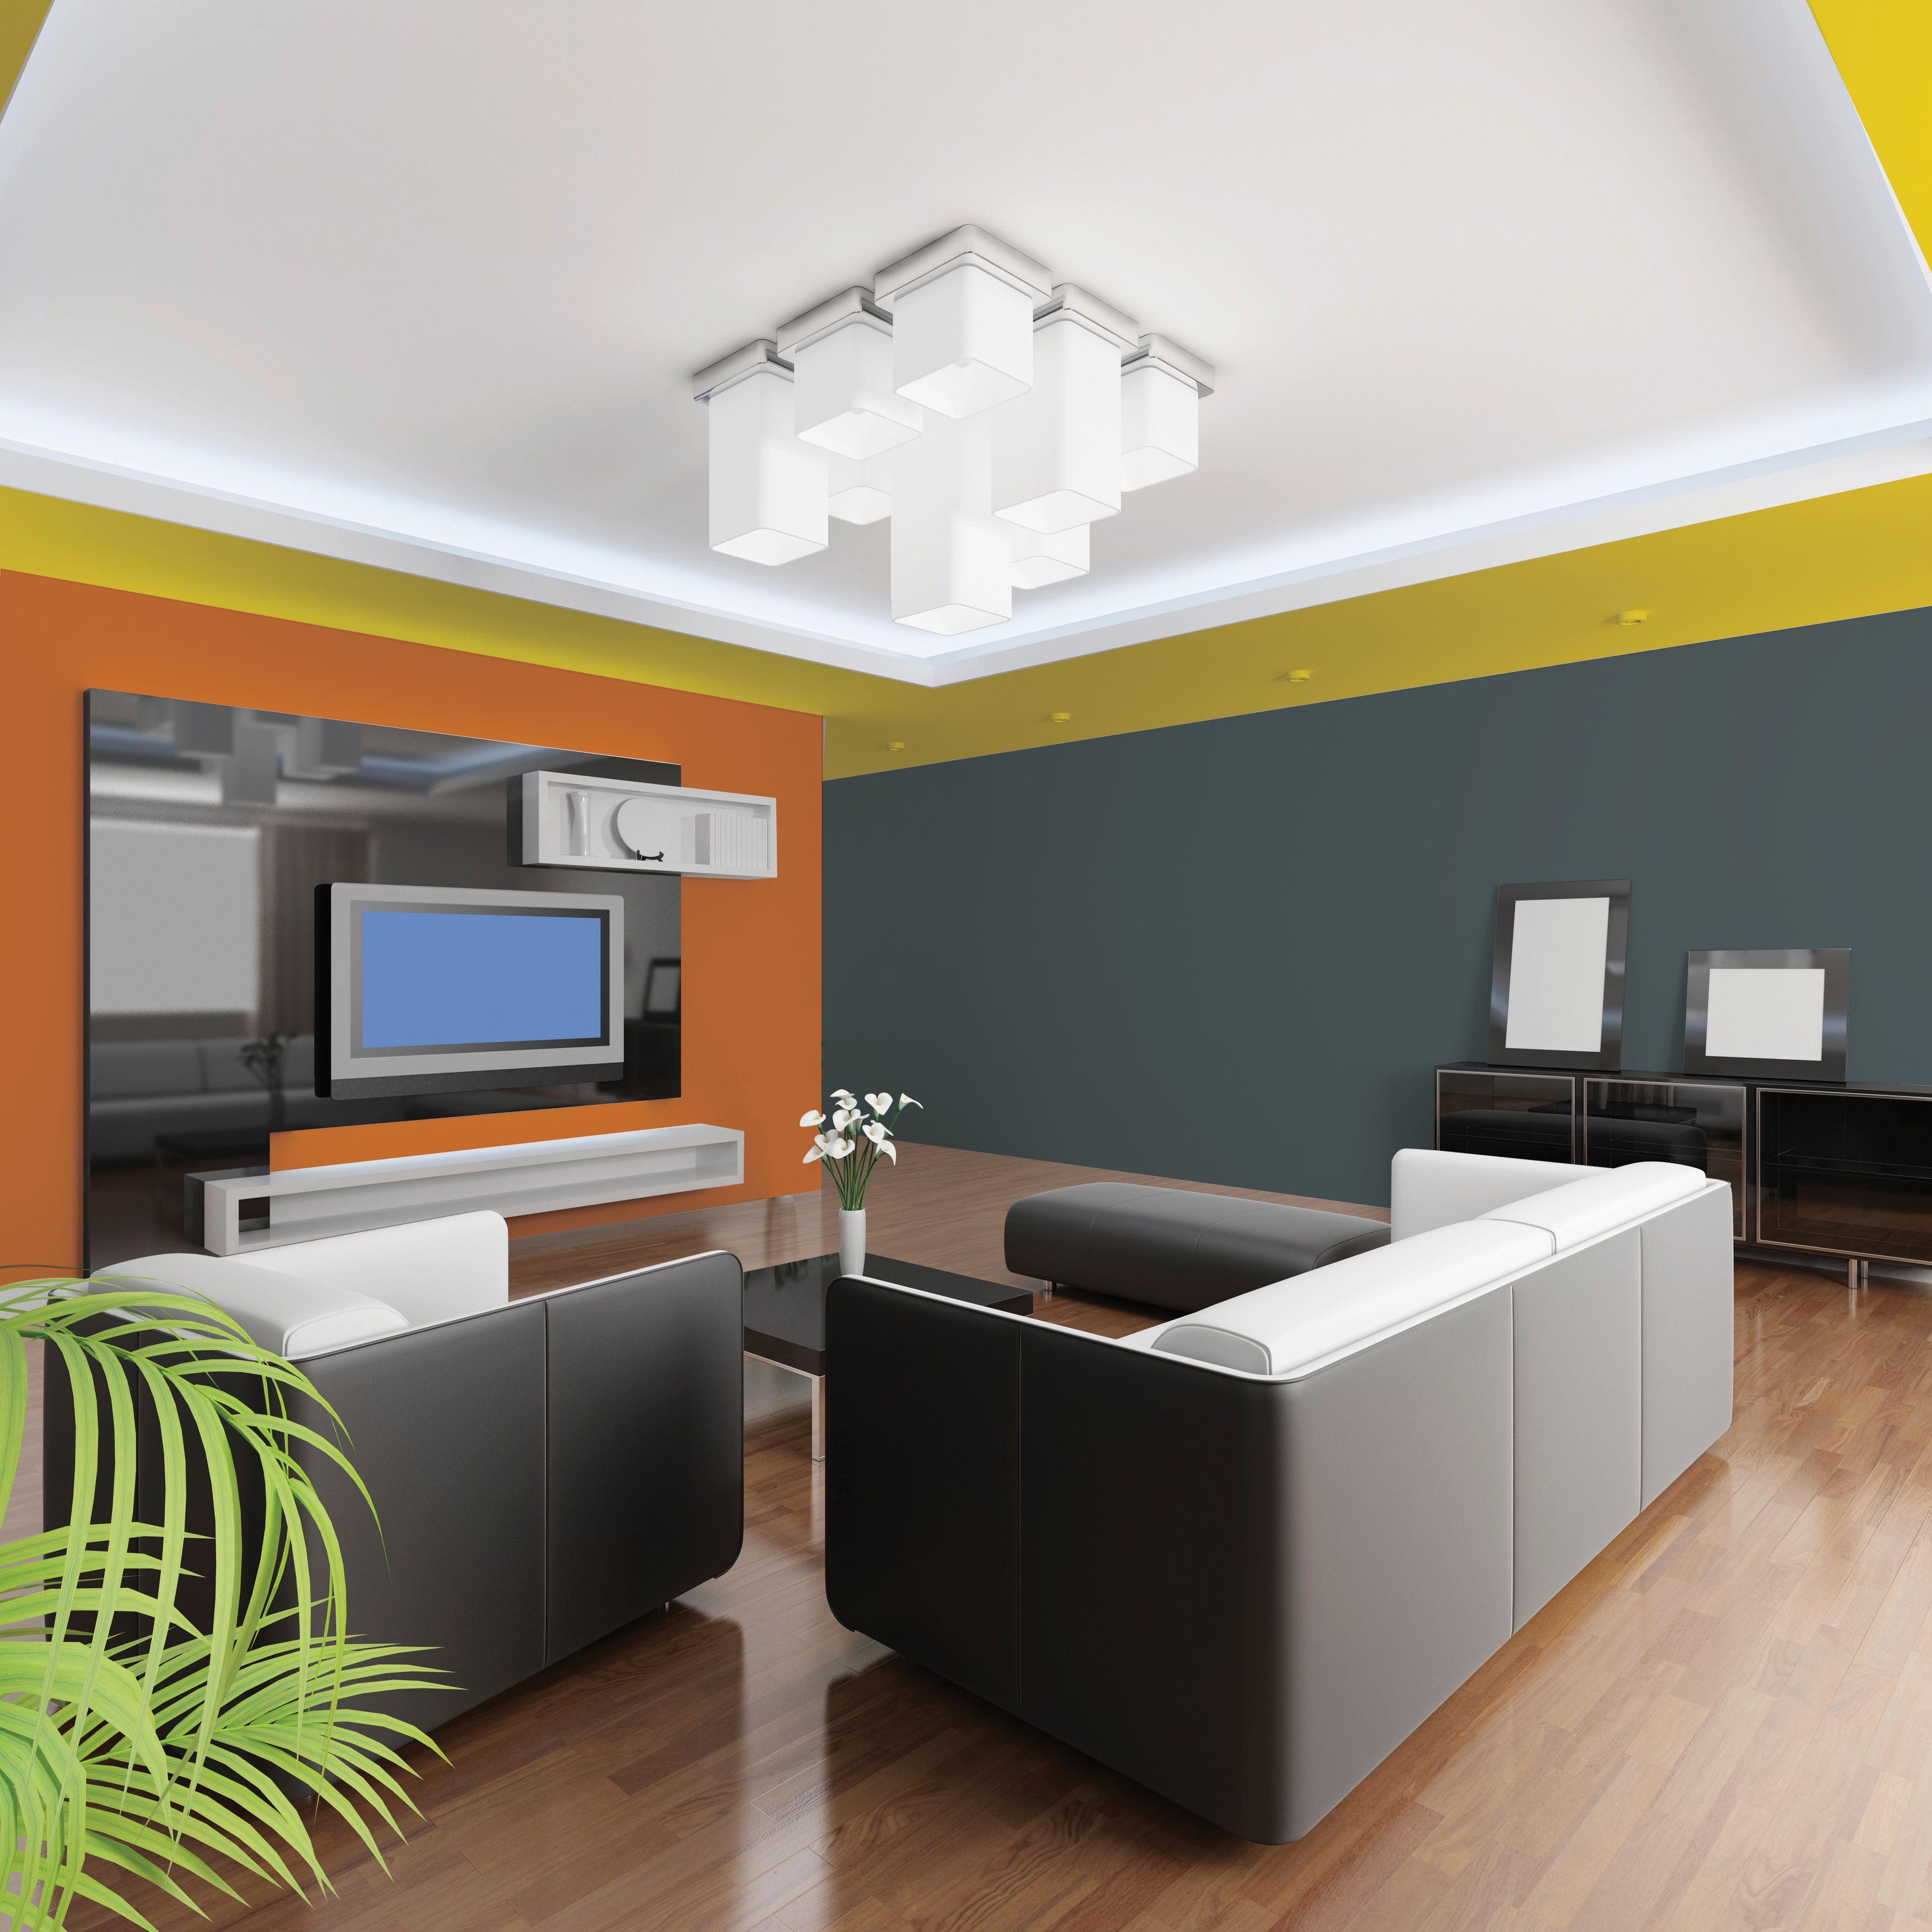 pin by nippon paint color vision 2020 on north nippon on most popular interior paint colors for 2021 id=99350